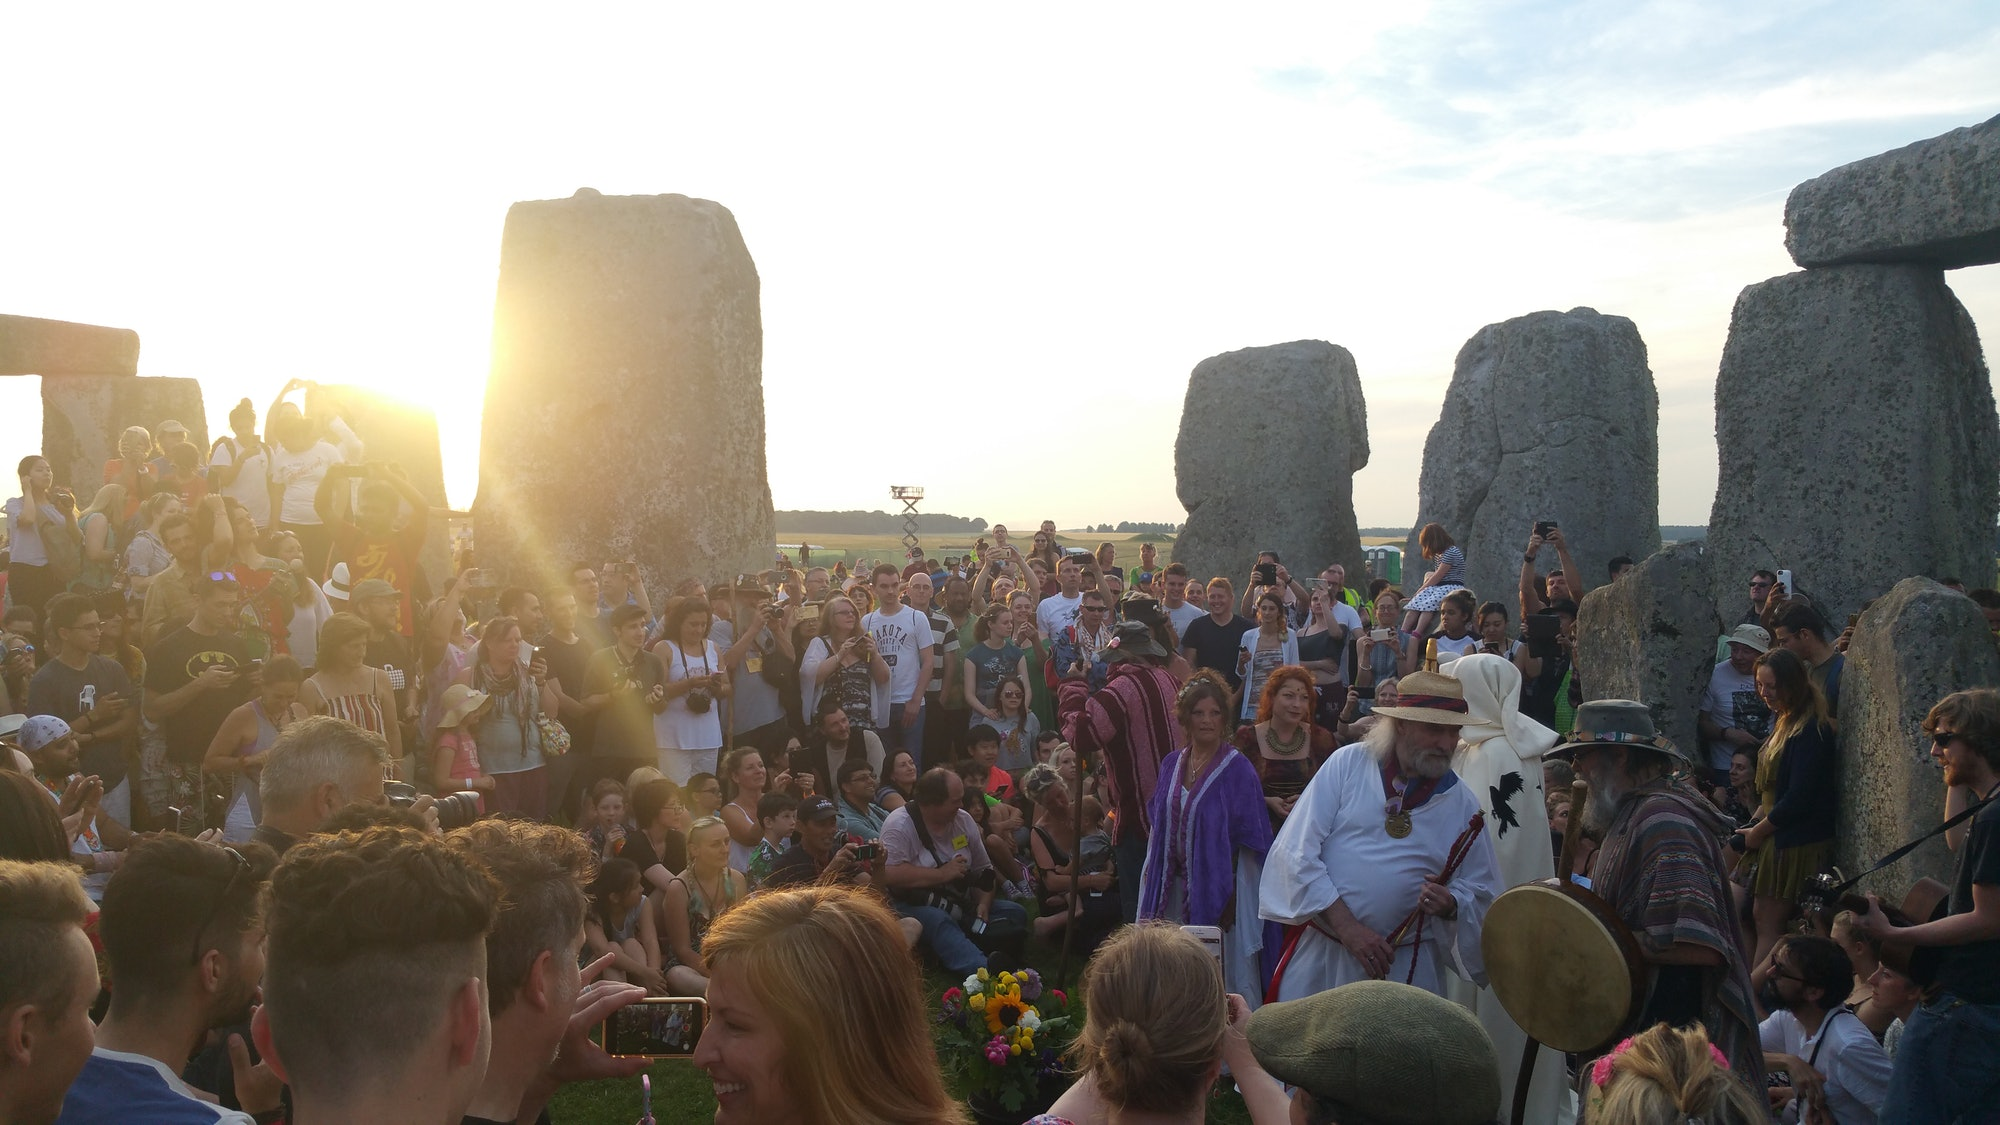 Crowds typically gather at Stonehenge to celebrate the Summer Solstice.